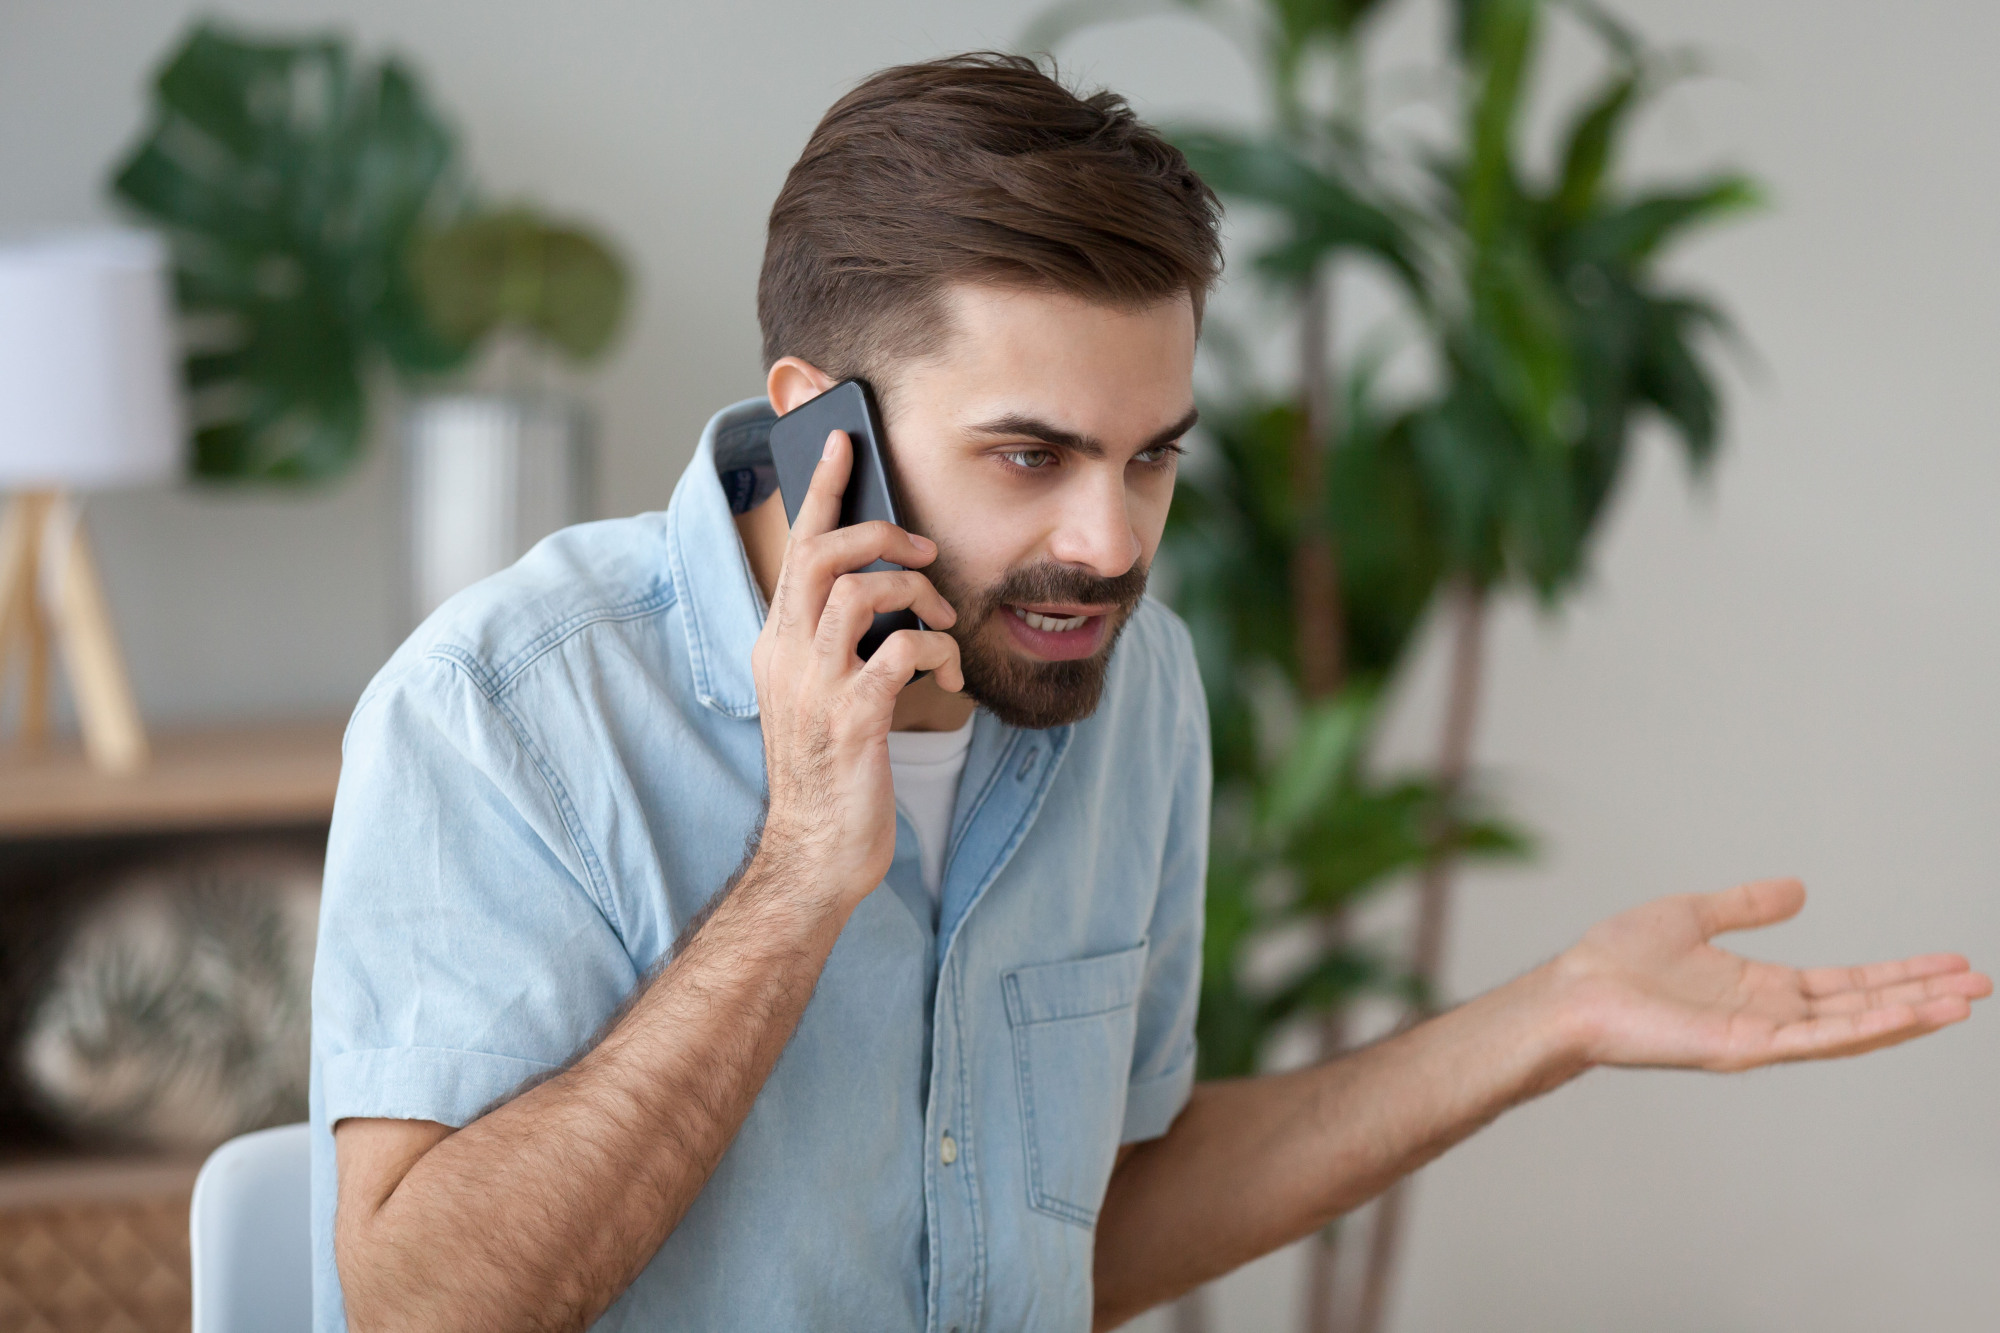 That dreaded call: Every business needs to be worried about unsatisfied customers, but problems may arise when a miserable few dictate the direction of a company. | GETTY IMAGES